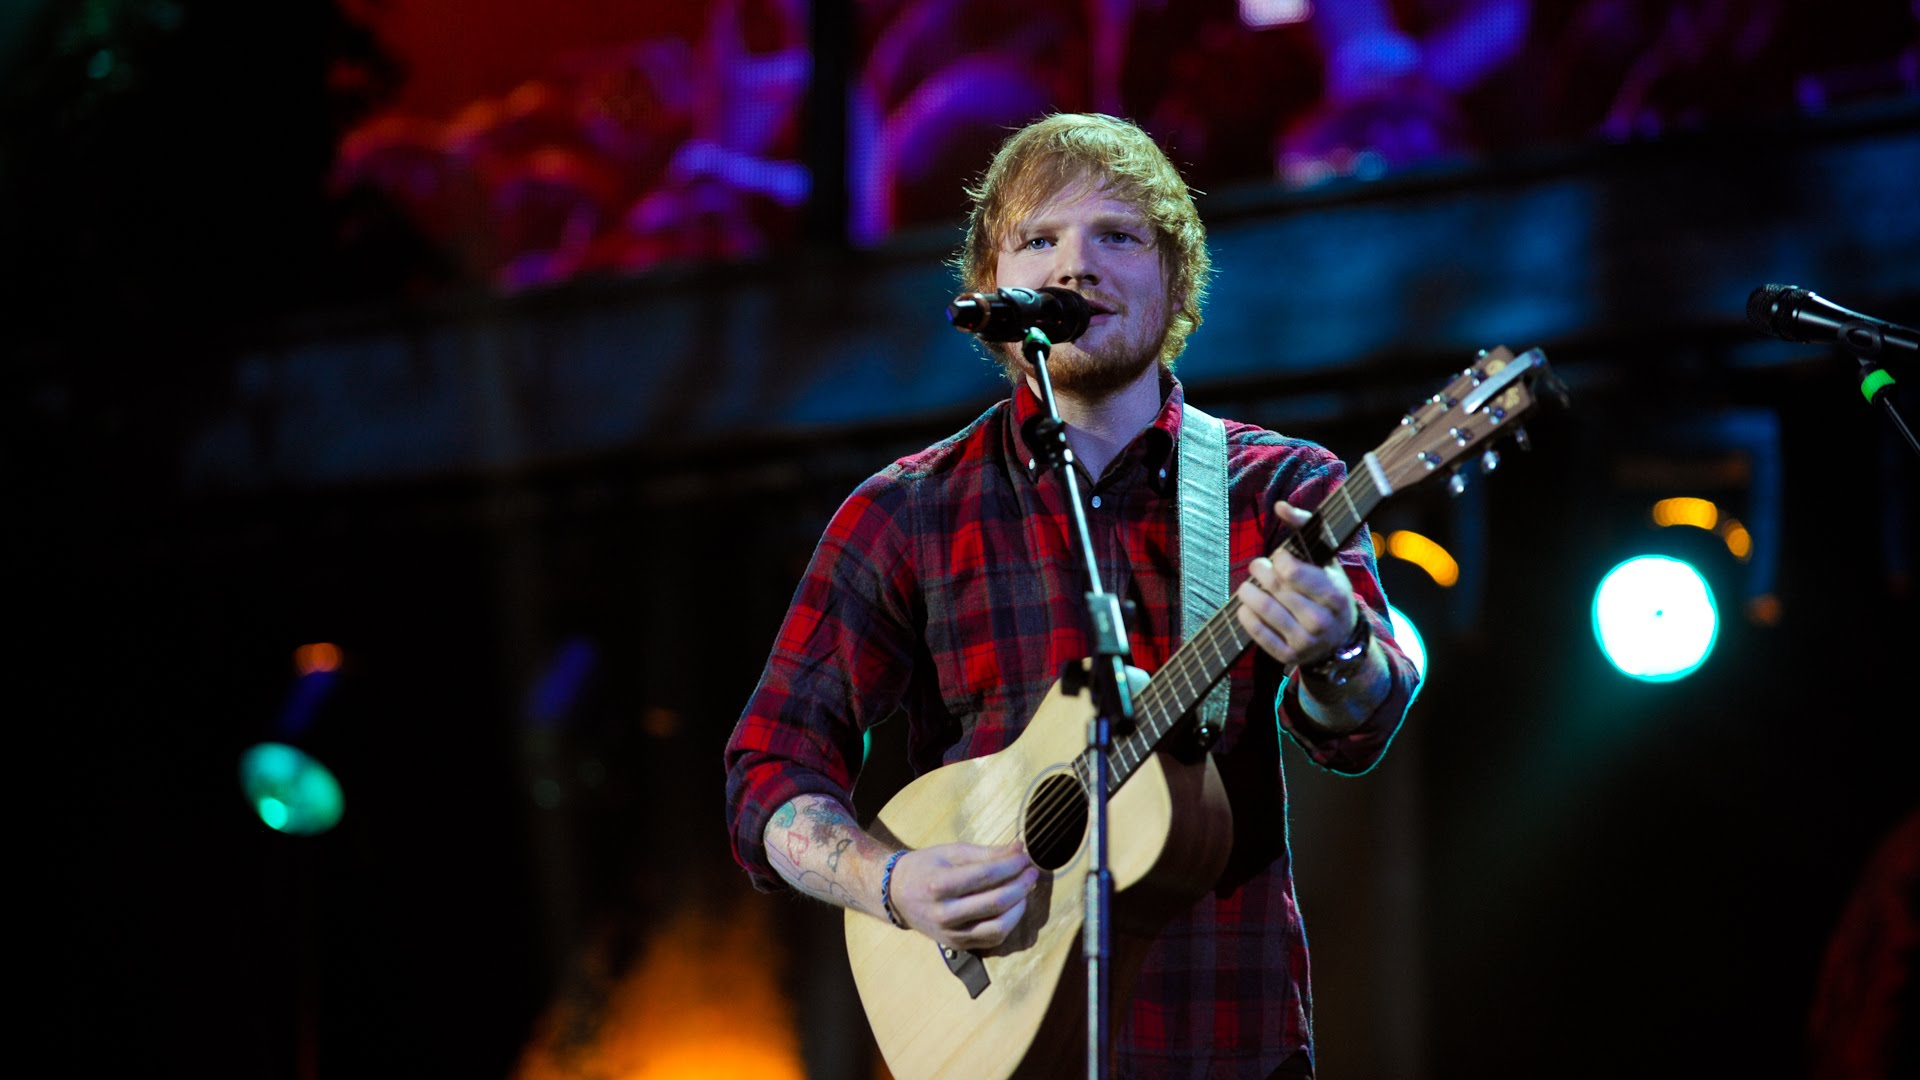 Ed Sheeran is Getting Sued for Copyright Infringement